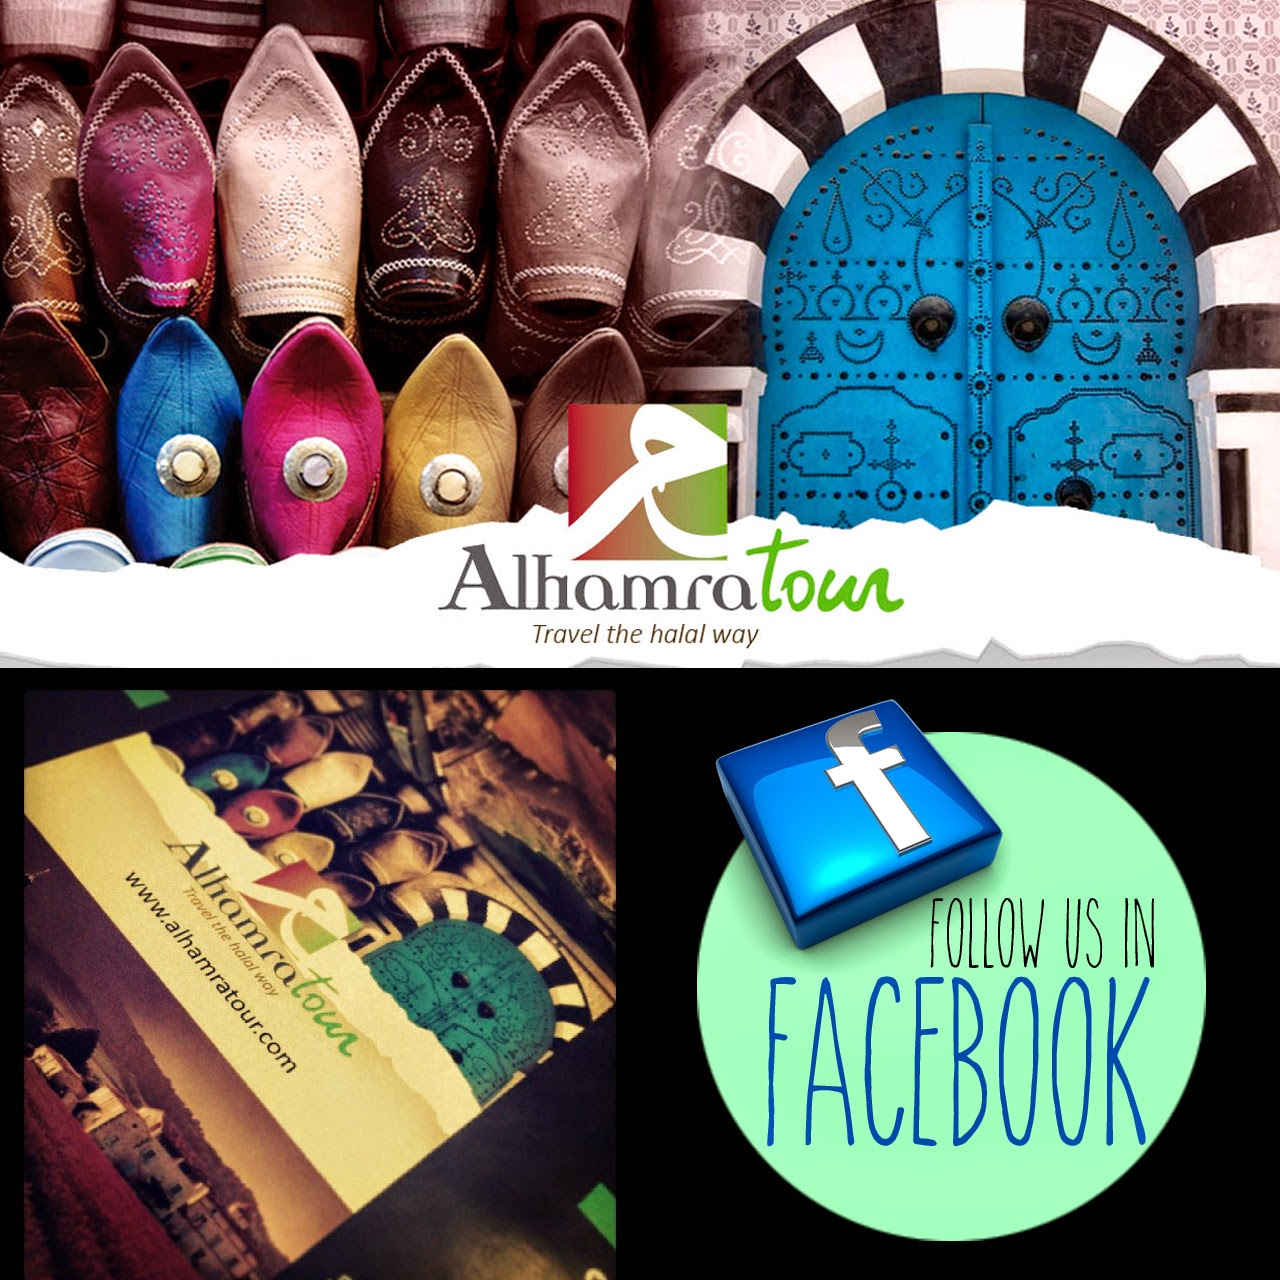 Follow Alhramratour in Facebook